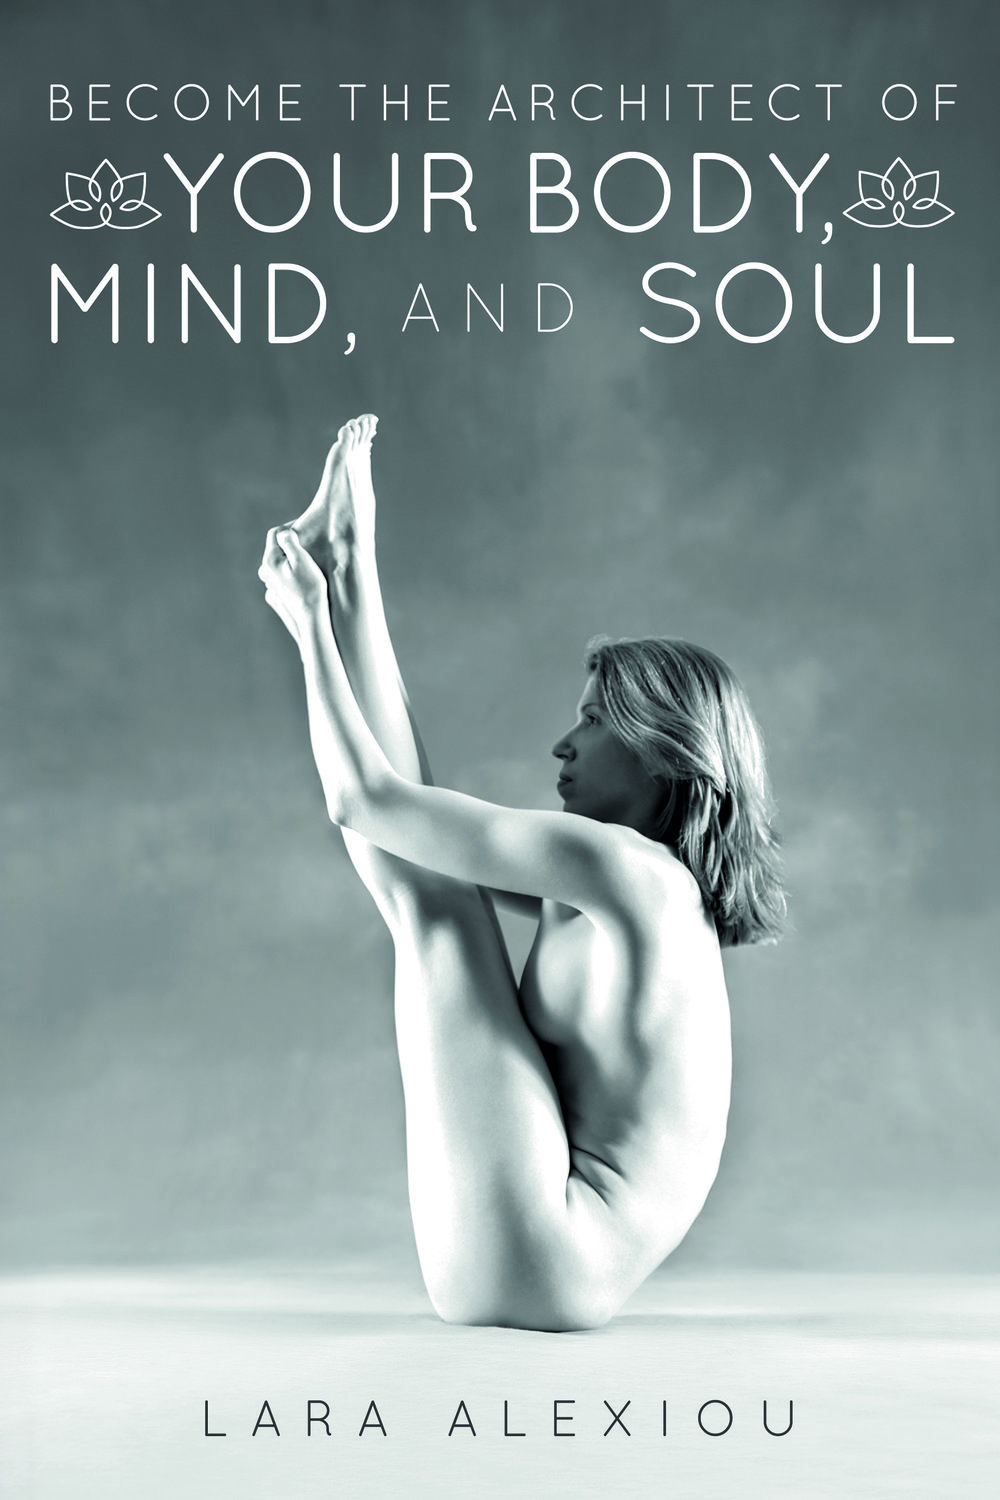 Become the Architect of Your Body Mind, and Soul  available on  Amazon .